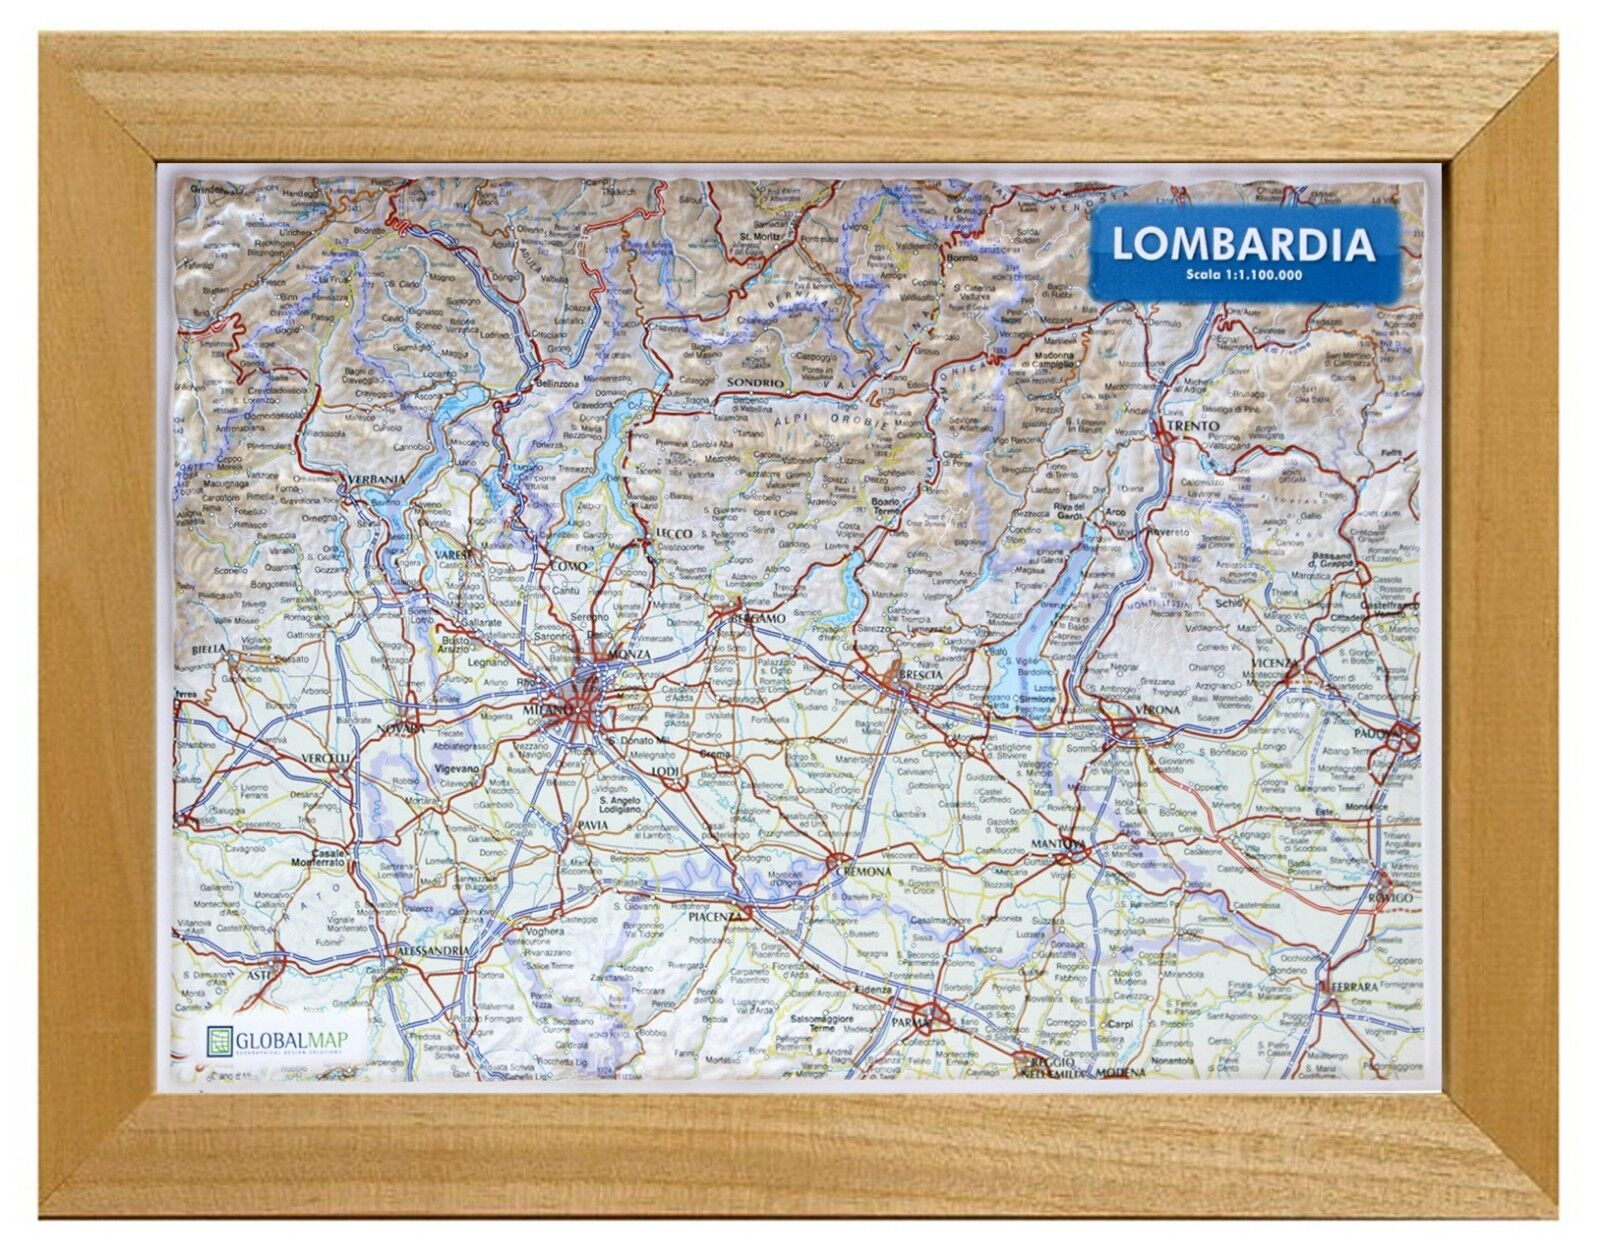 Cartina Satellitare Lombardia.Lombardia Carta In Rilievo 21x30 Cm Con Cornice Cartina Mappa Global Ebay